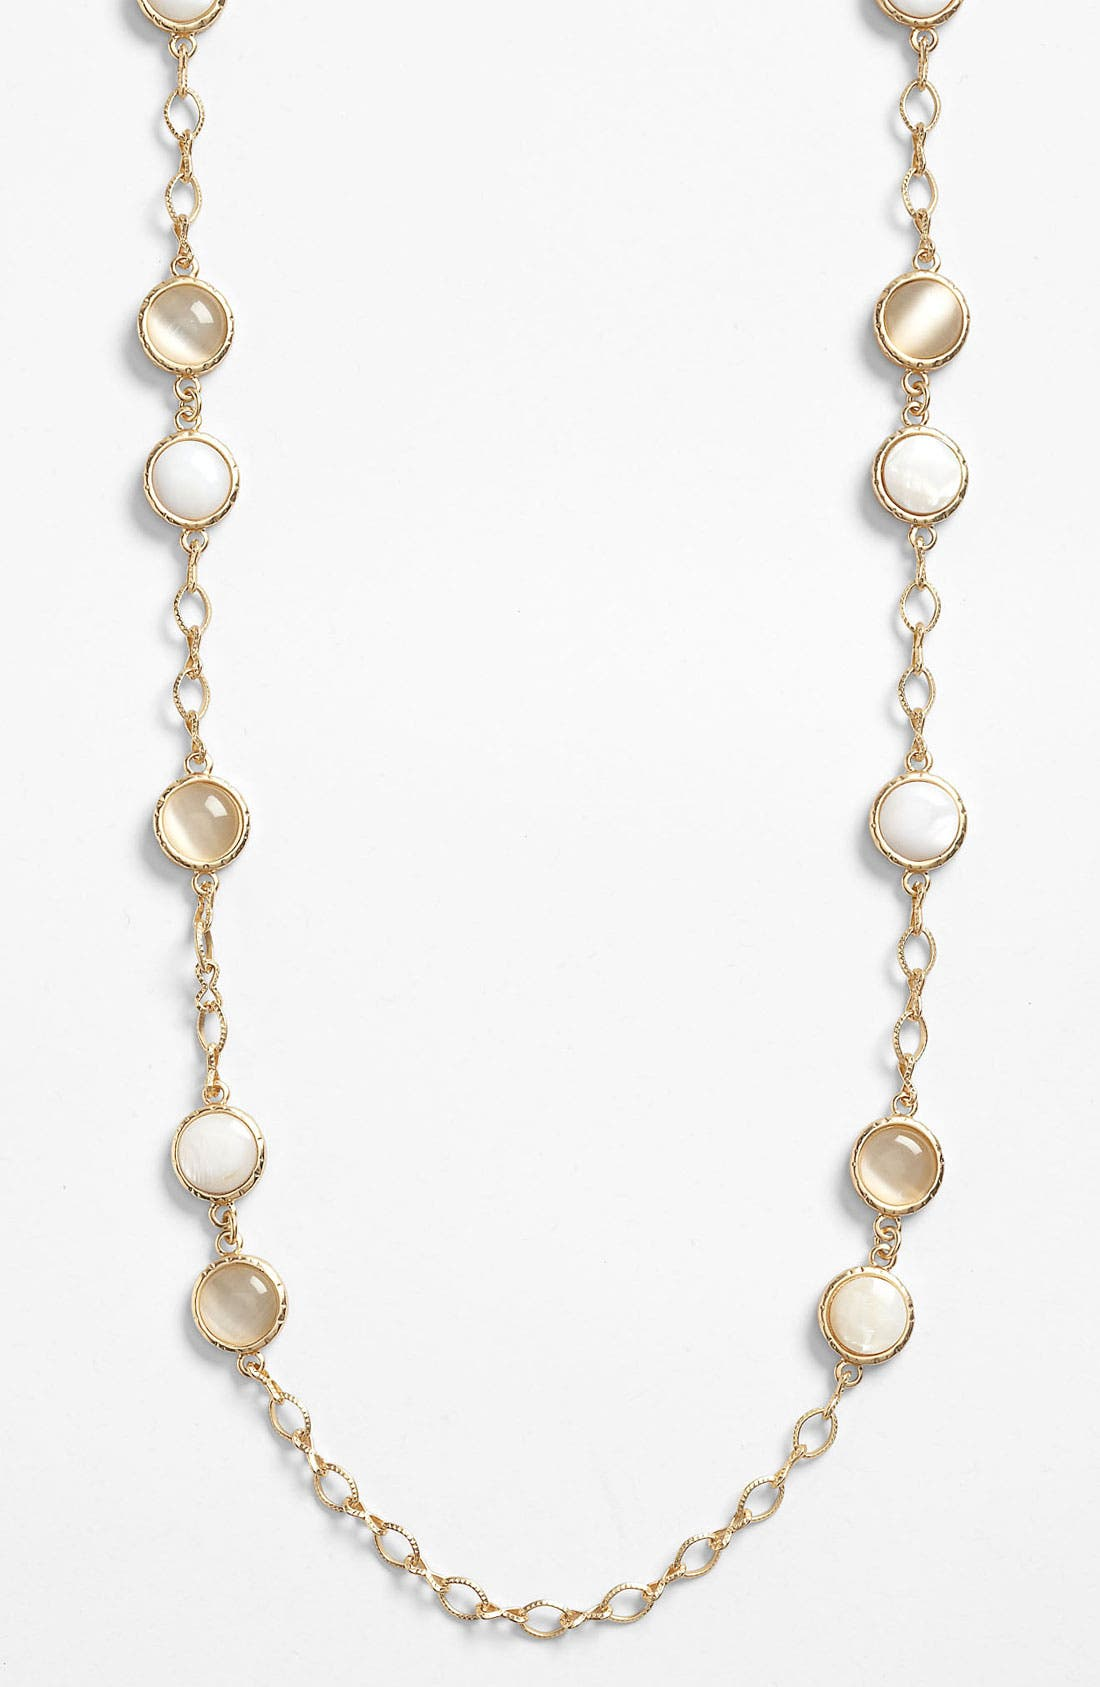 Alternate Image 1 Selected - Nordstrom 'Santorini' Long Station Necklace